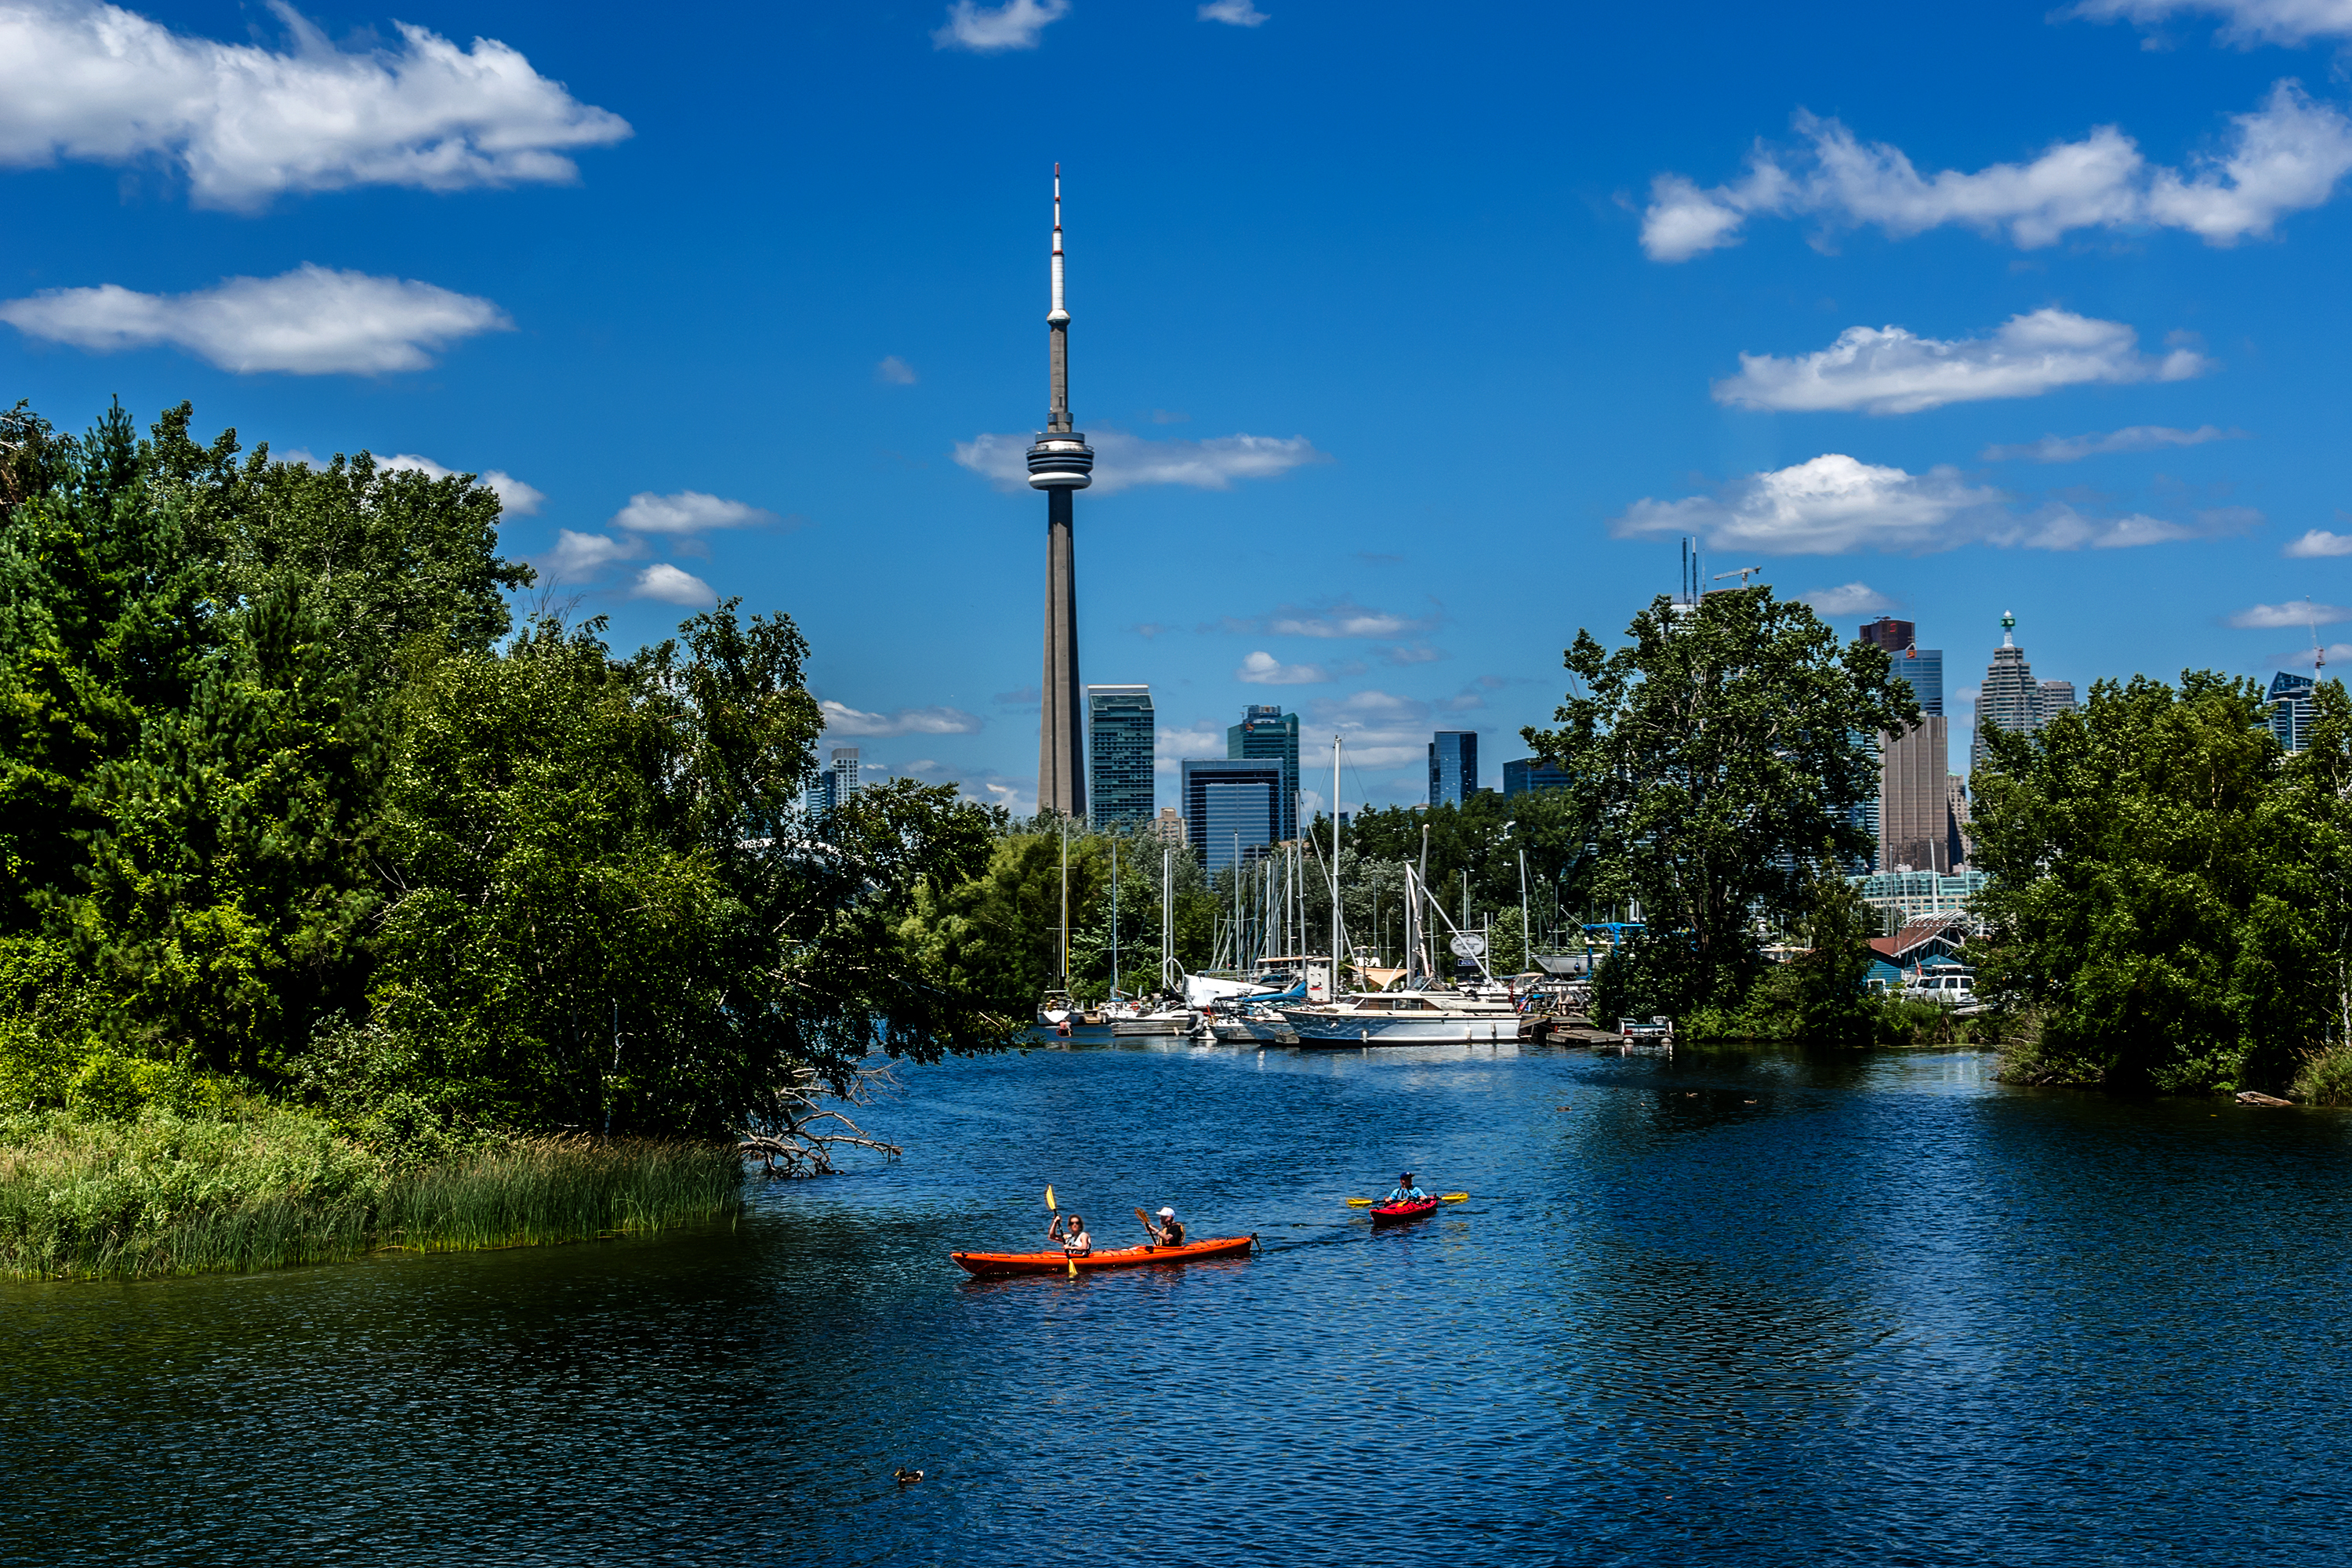 Toronto skyline with lake in foreground